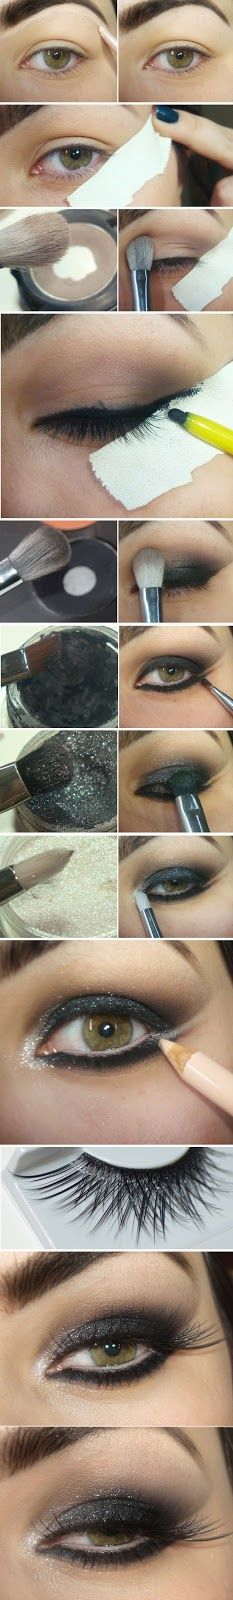 Black Shine Cat Eye Makeup Tutorials - Step by Step / Best LoLus Makeup Fashion